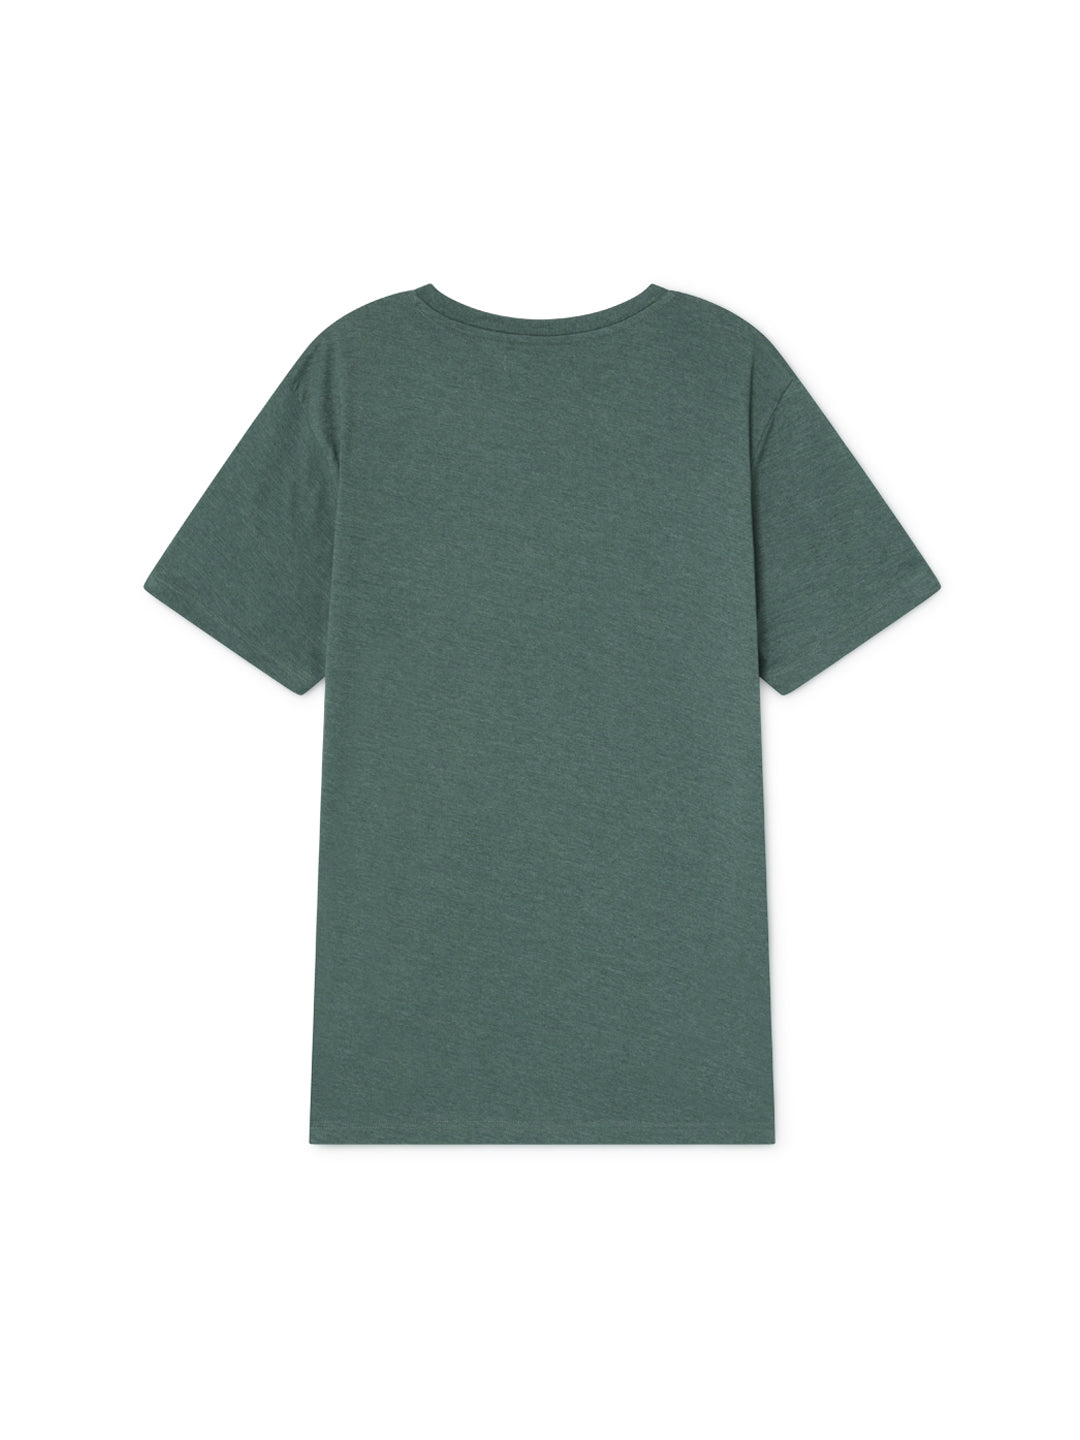 TWOTHIRDS Mens Tee: Mechuque - Deep Green back